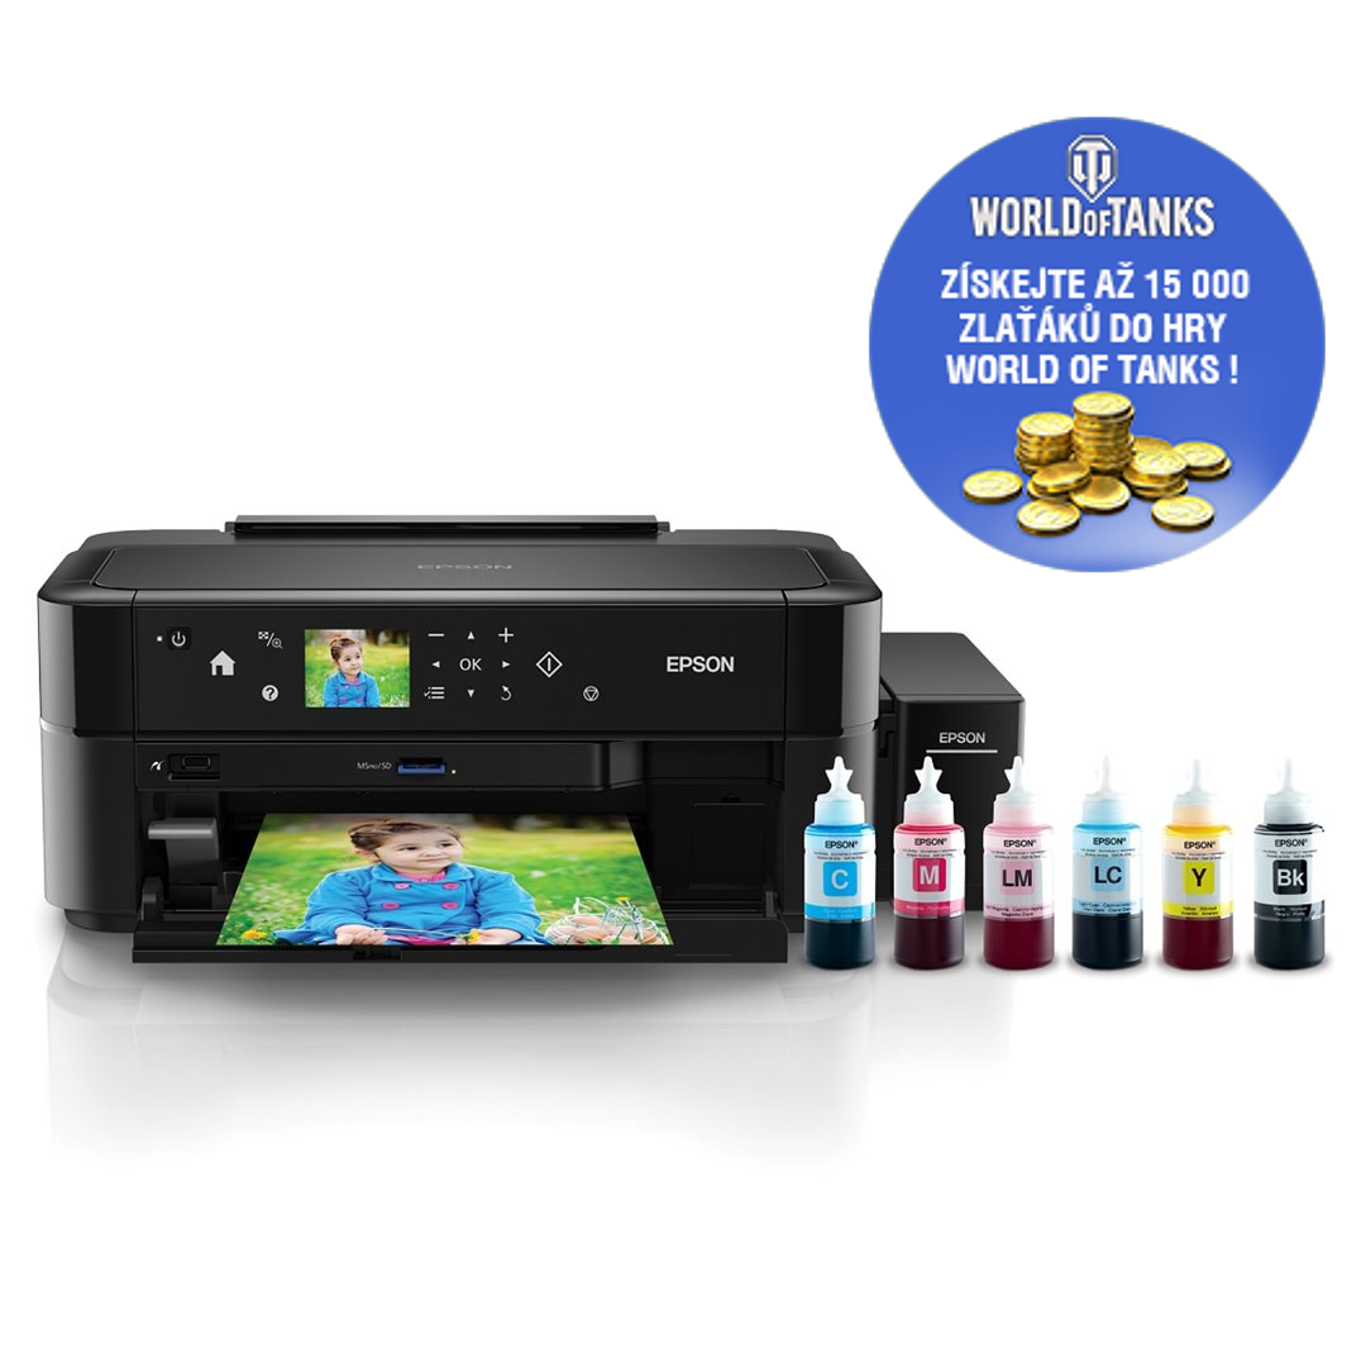 EPSON L810, A4, 5.760 x 1.440, 5 ppm, 6 ink ITS - C11CE32401